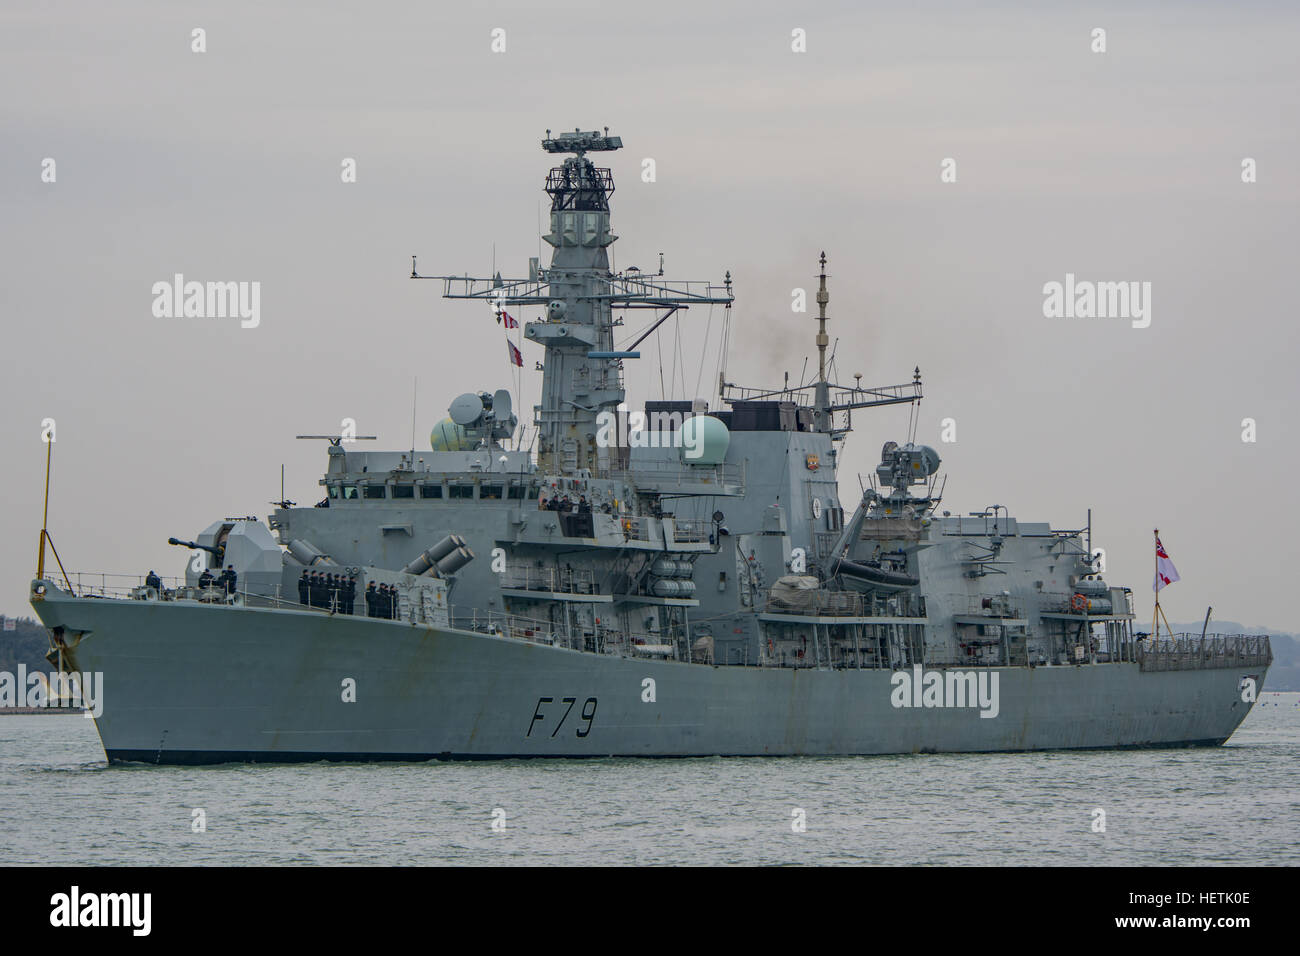 The British Royal Navy Type 23 Frigate, HMS Portland (F79) departing Portsmouth, UK on the 16th February 2015. - Stock Image